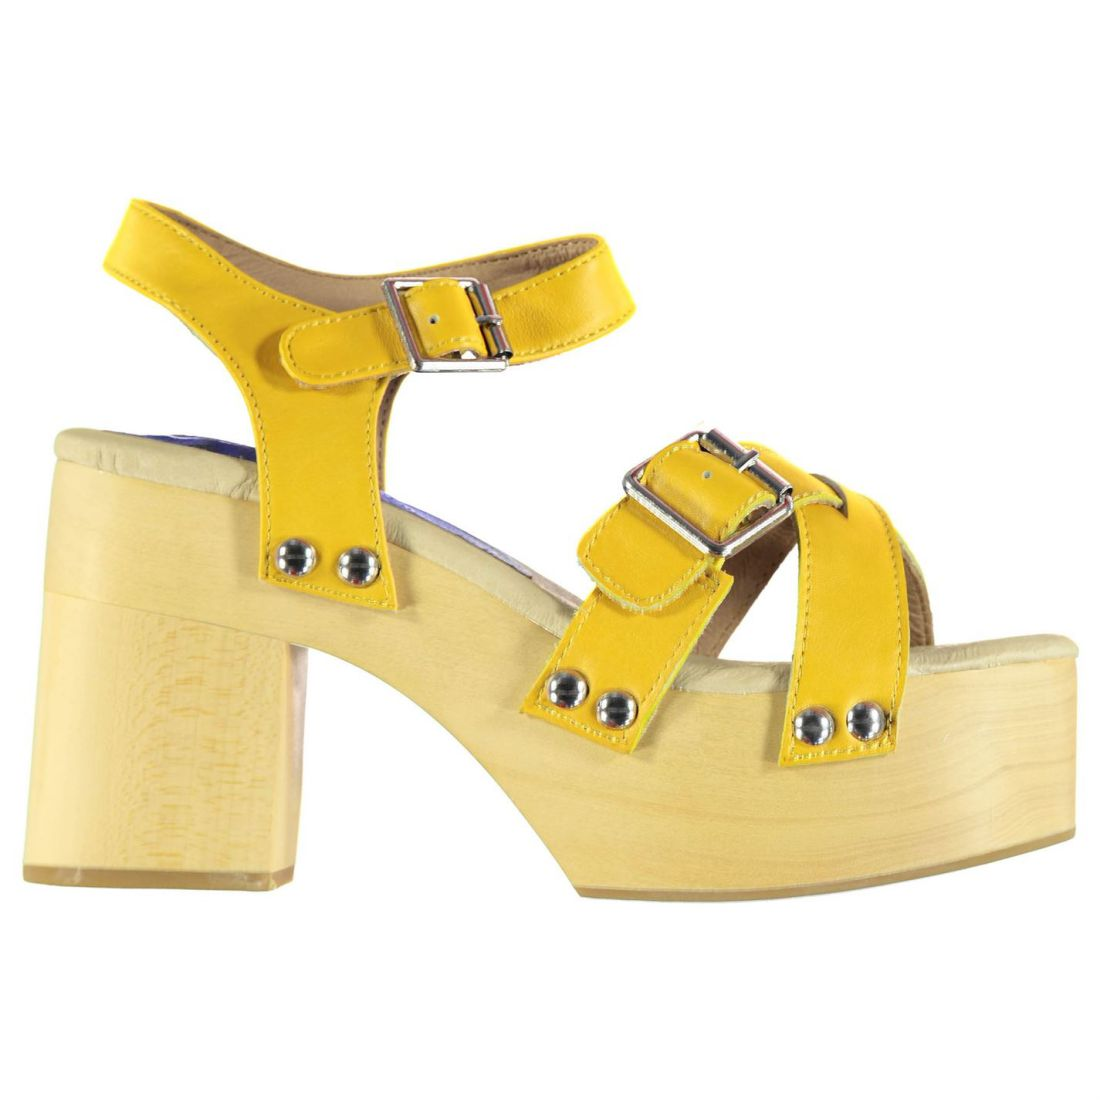 e5e3e7372a1 Jeffrey-Campbell-Peasy-Platform-Heeled-Sandals-Womens thumbnail 11